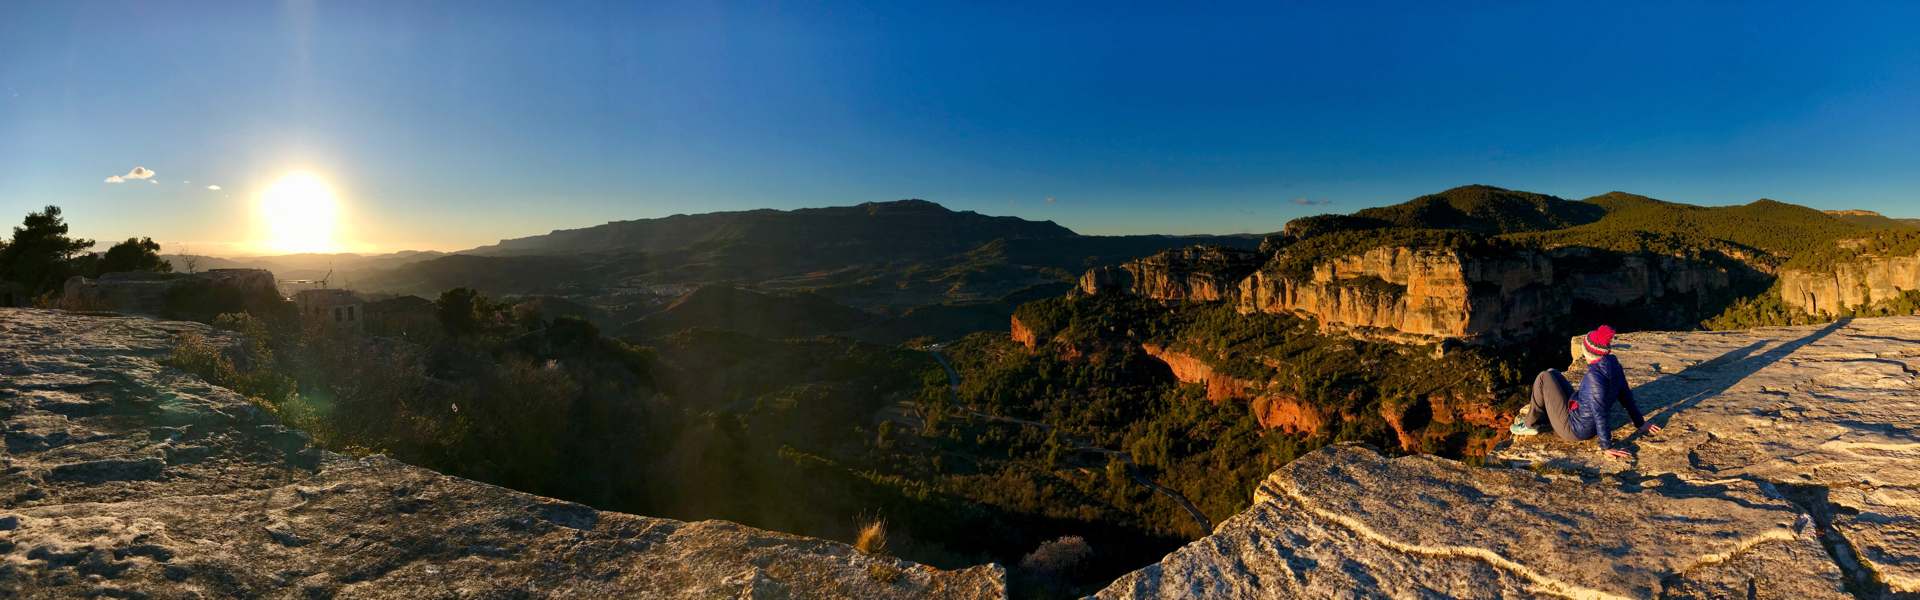 The always spectacular view from Siurana village